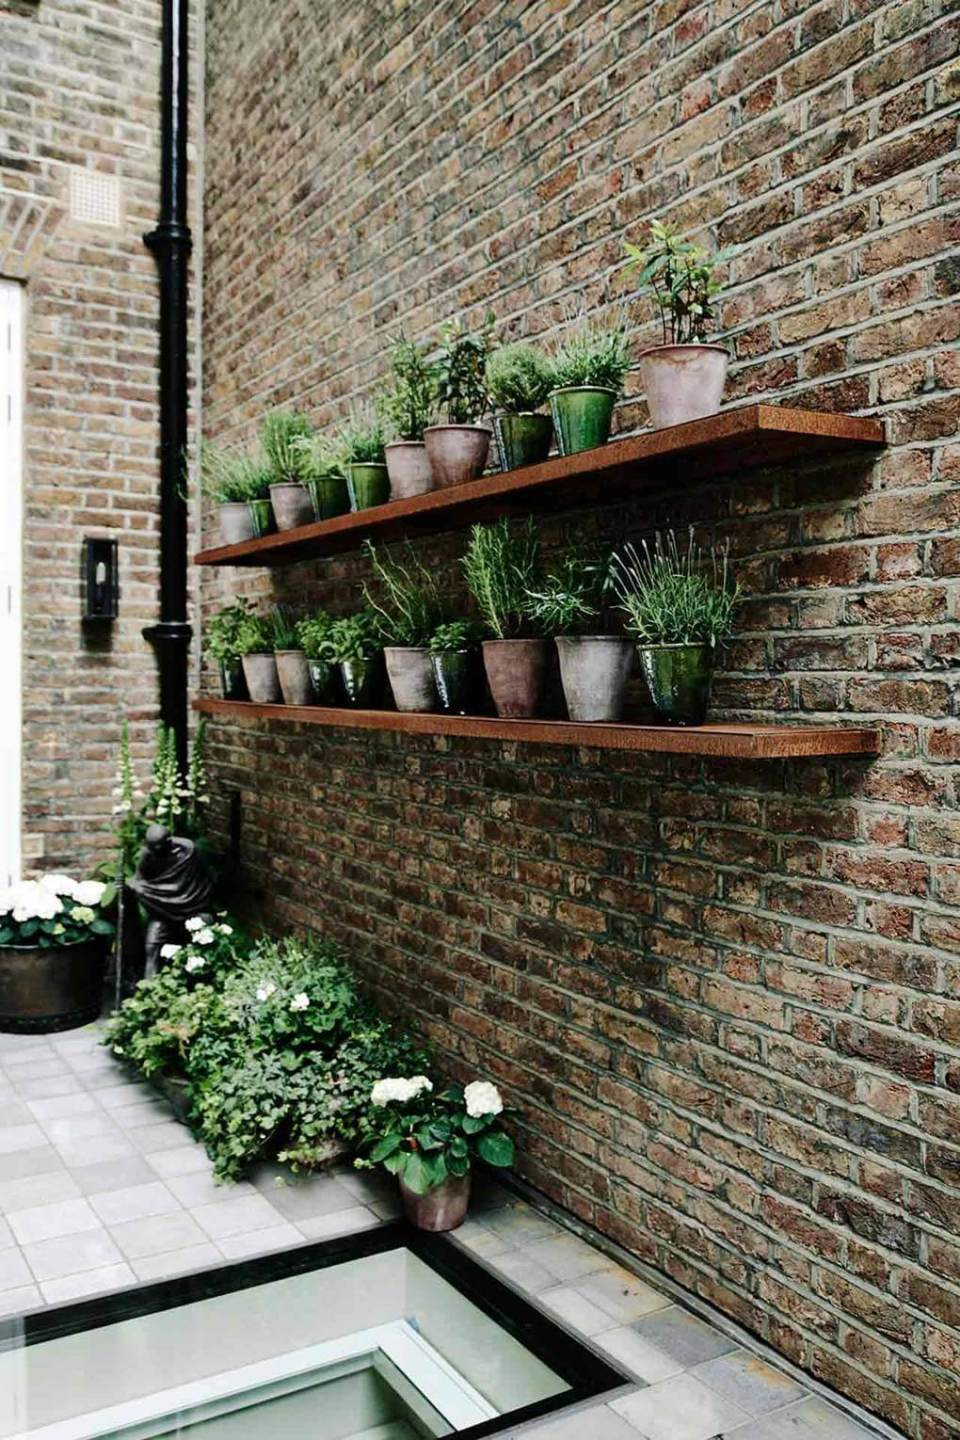 The garden terrace with potted herbs on rusted shelves